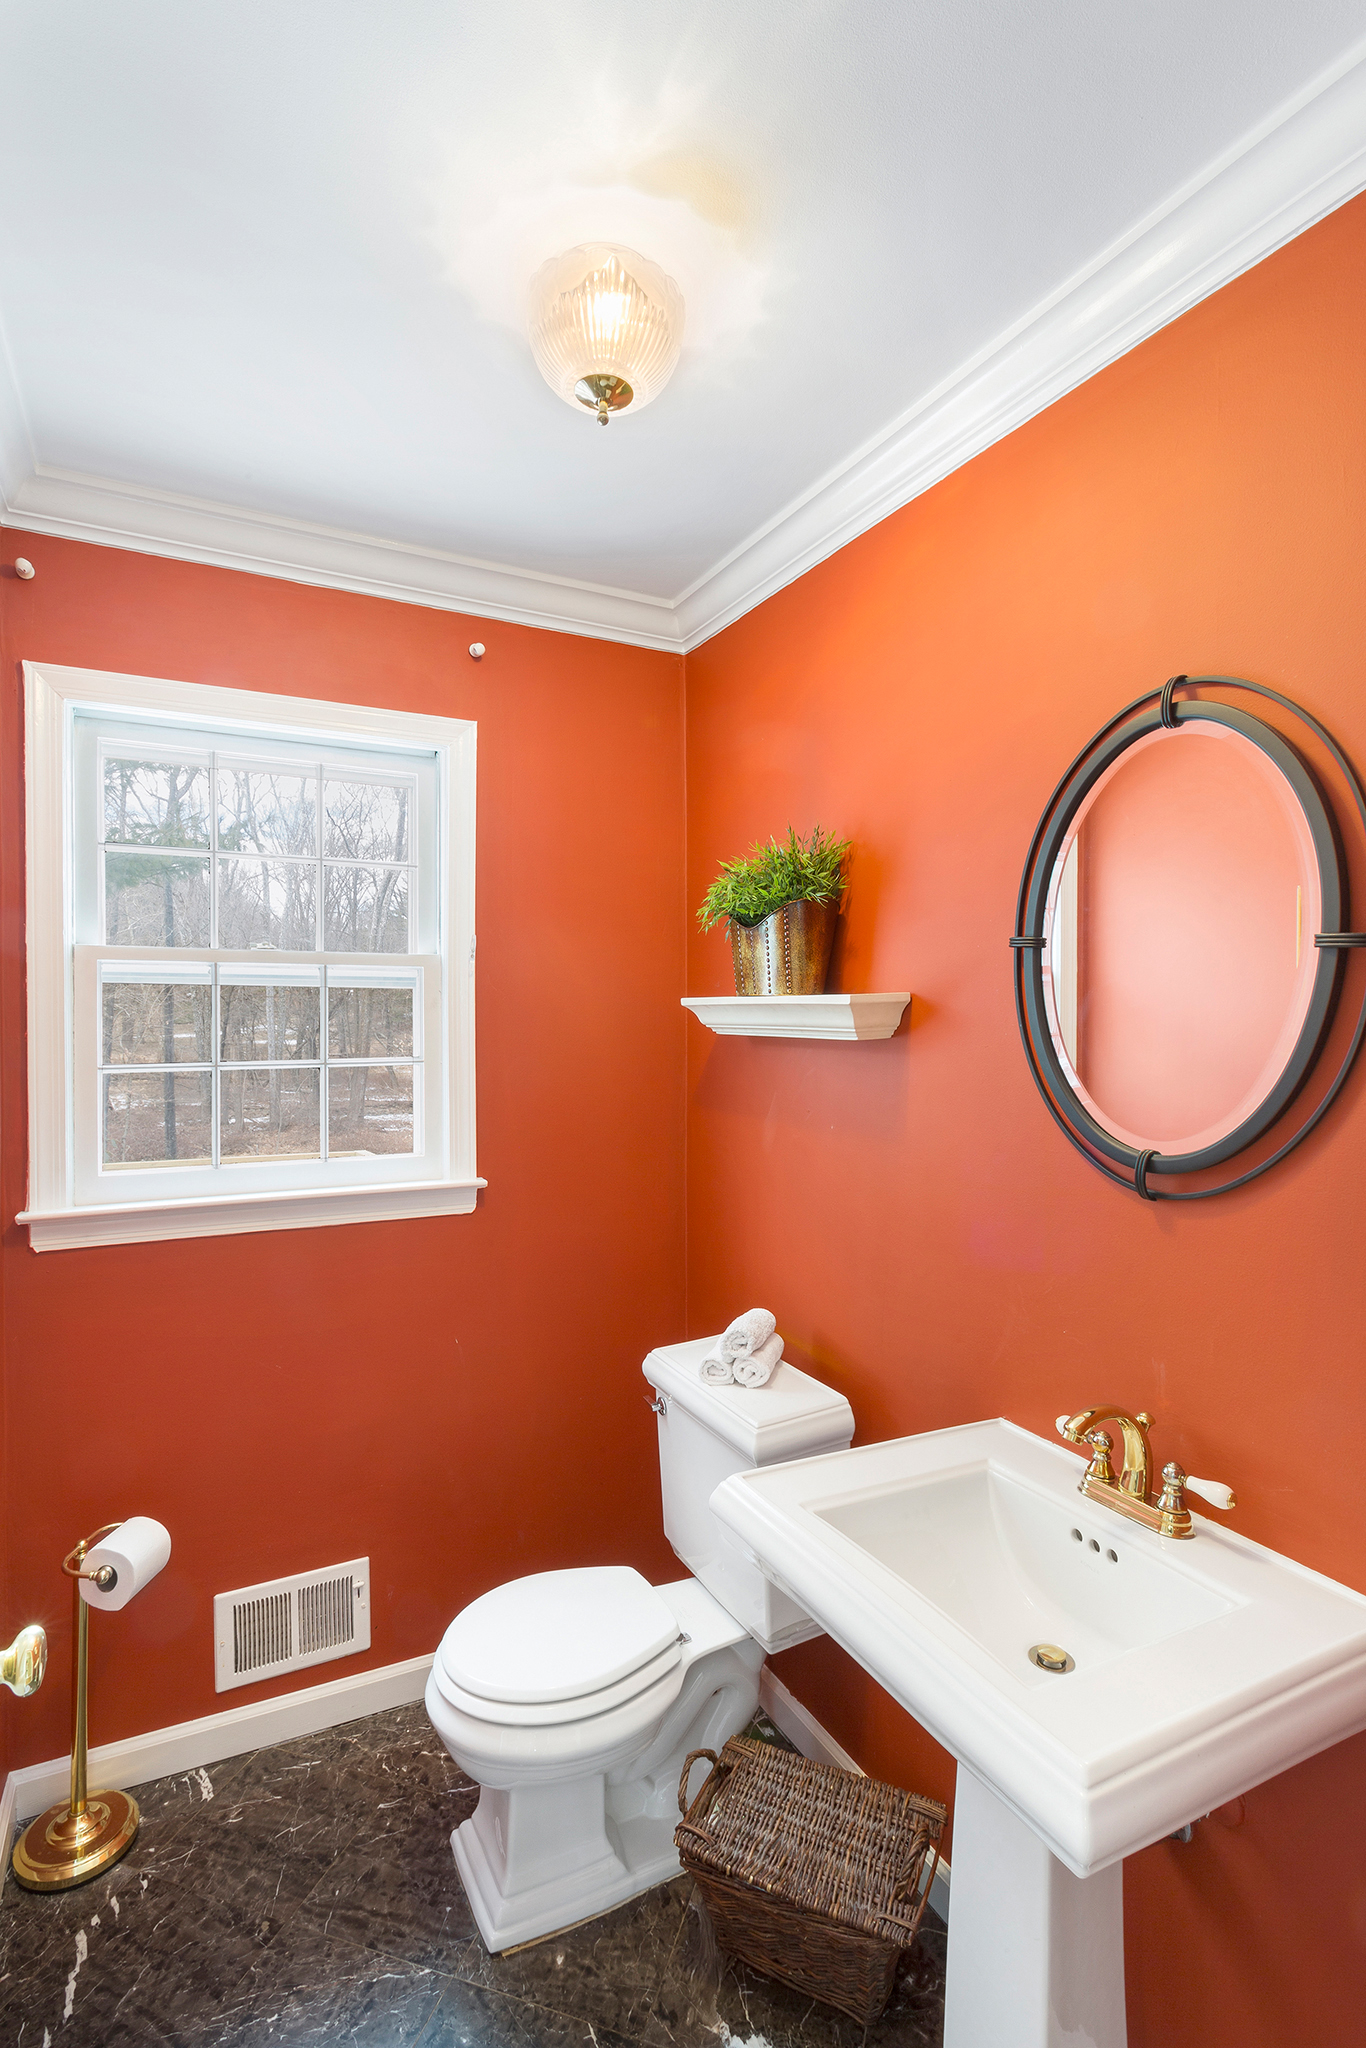 09 14 Keats Road Tewksbury Township — Powder Room